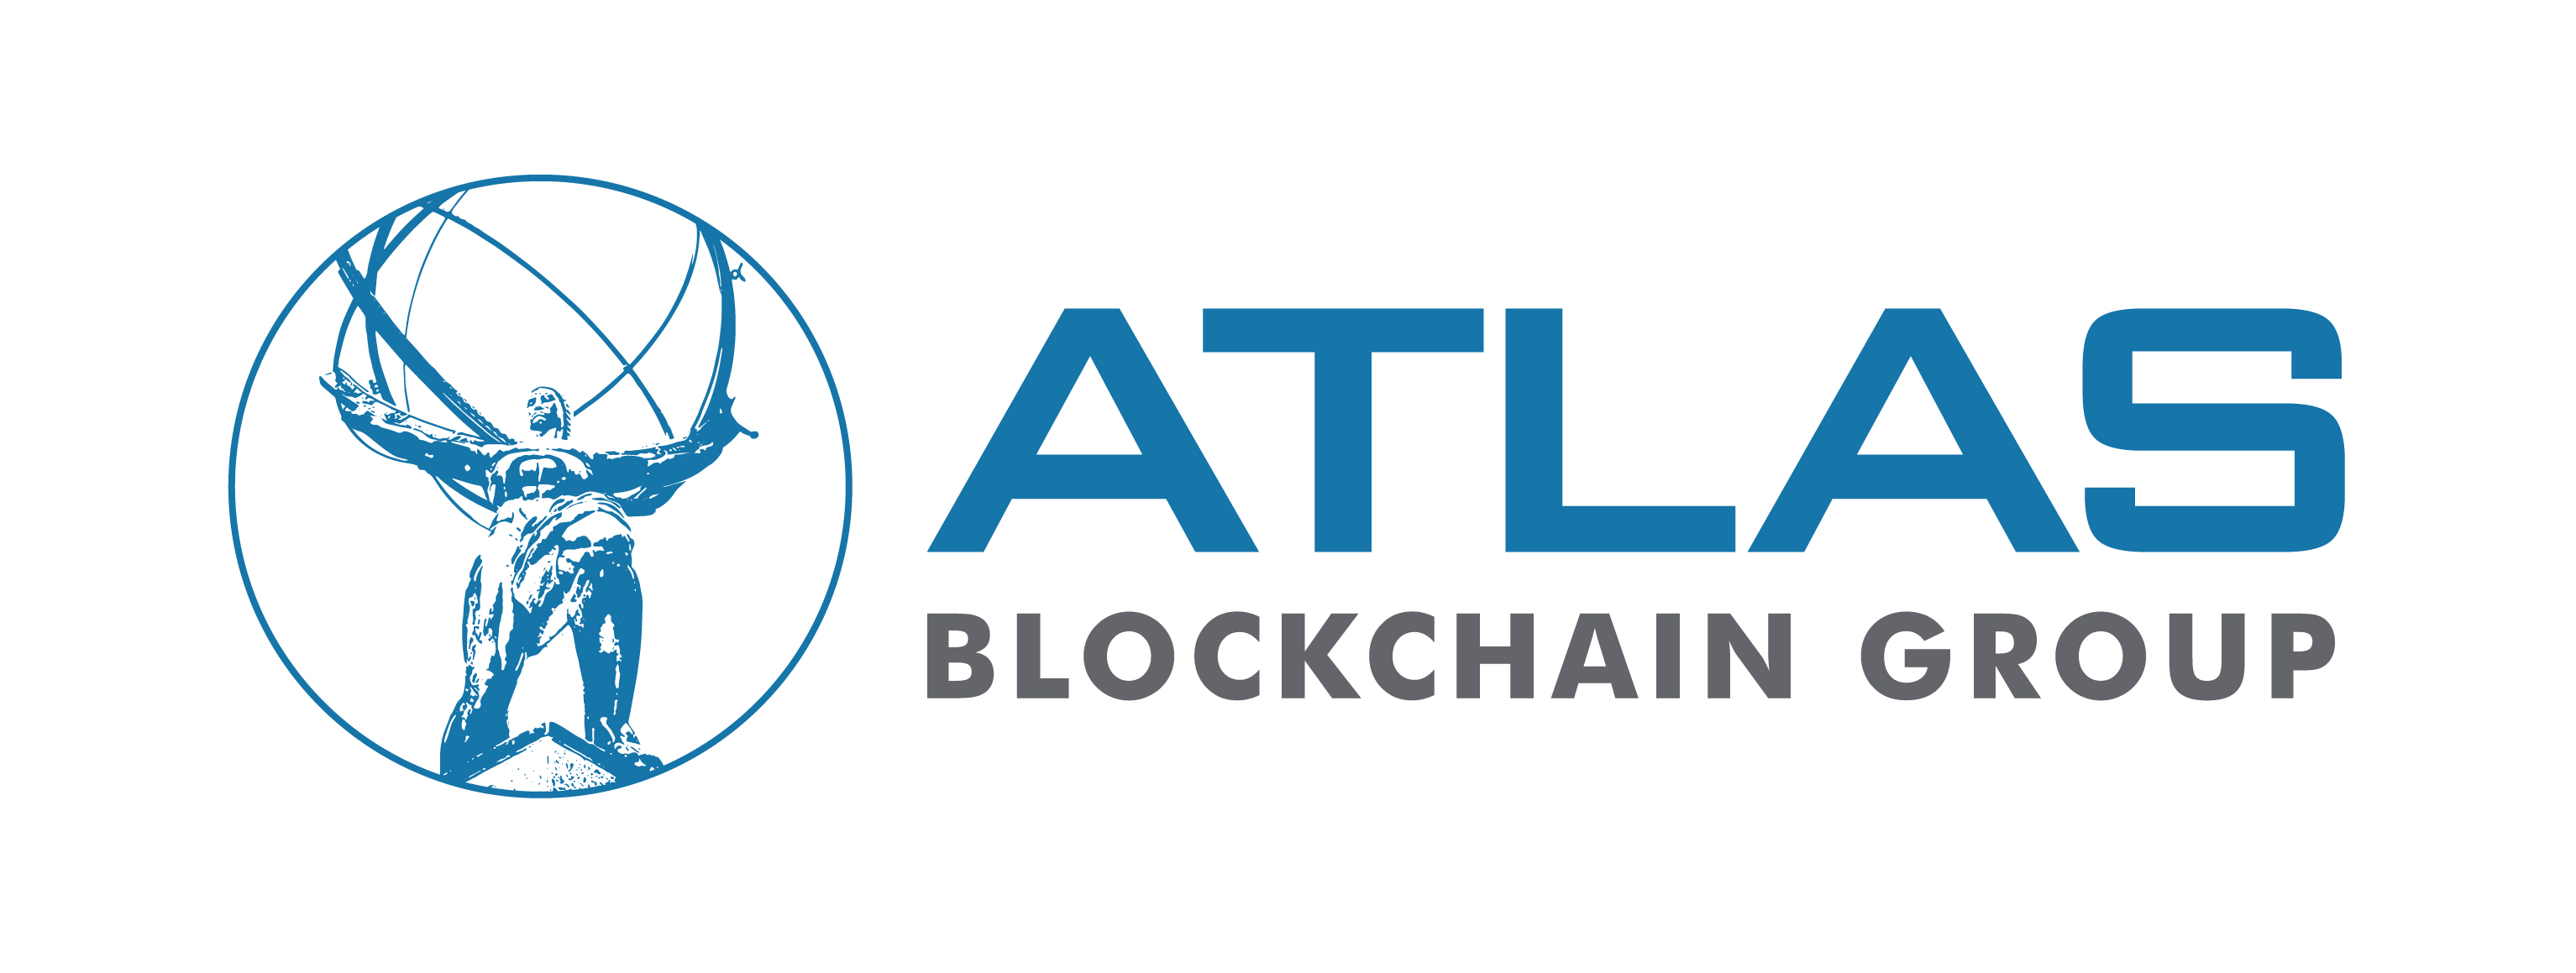 Atlas Blockchain Announces Conditional Approval of Transaction with Isracann Biosciences Inc.